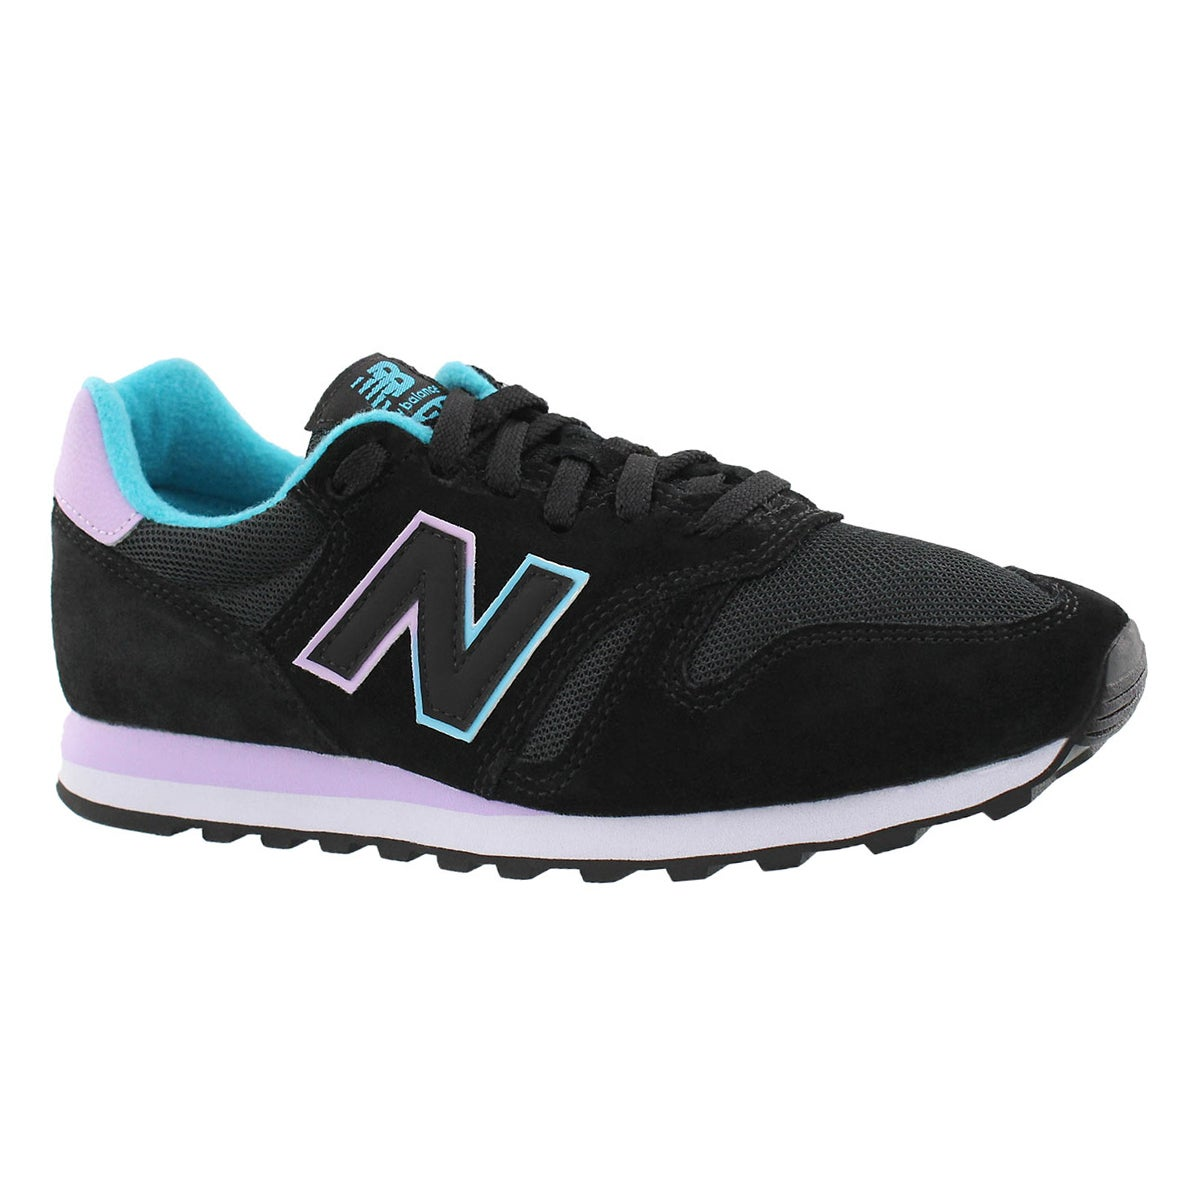 Women's 373 black/lilac lace up running shoes